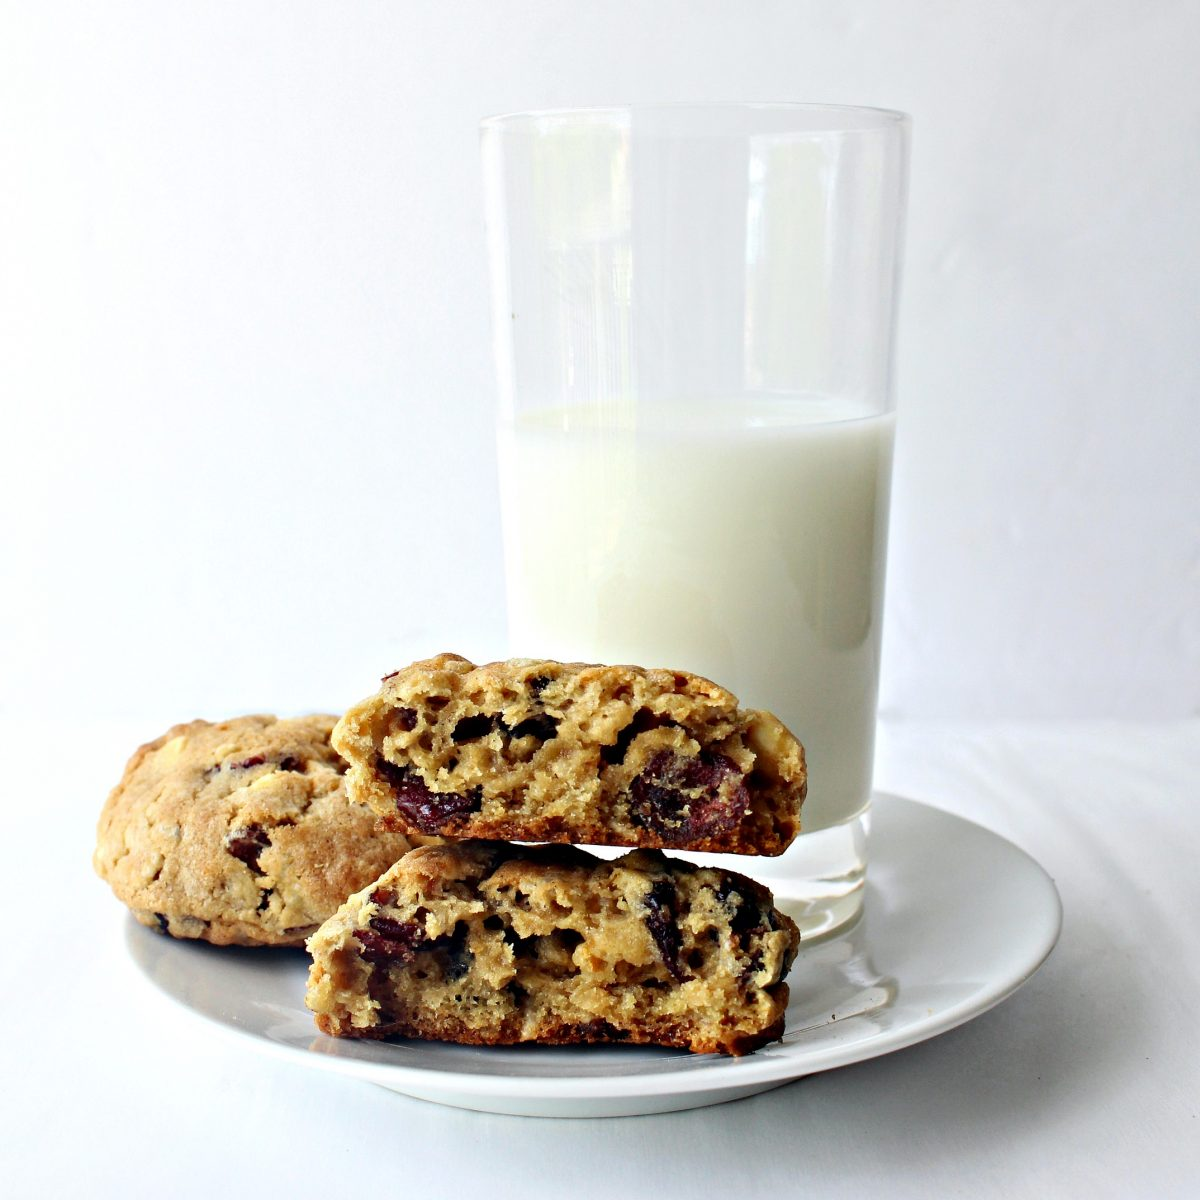 Cookies on a white plate with a glass of milk.